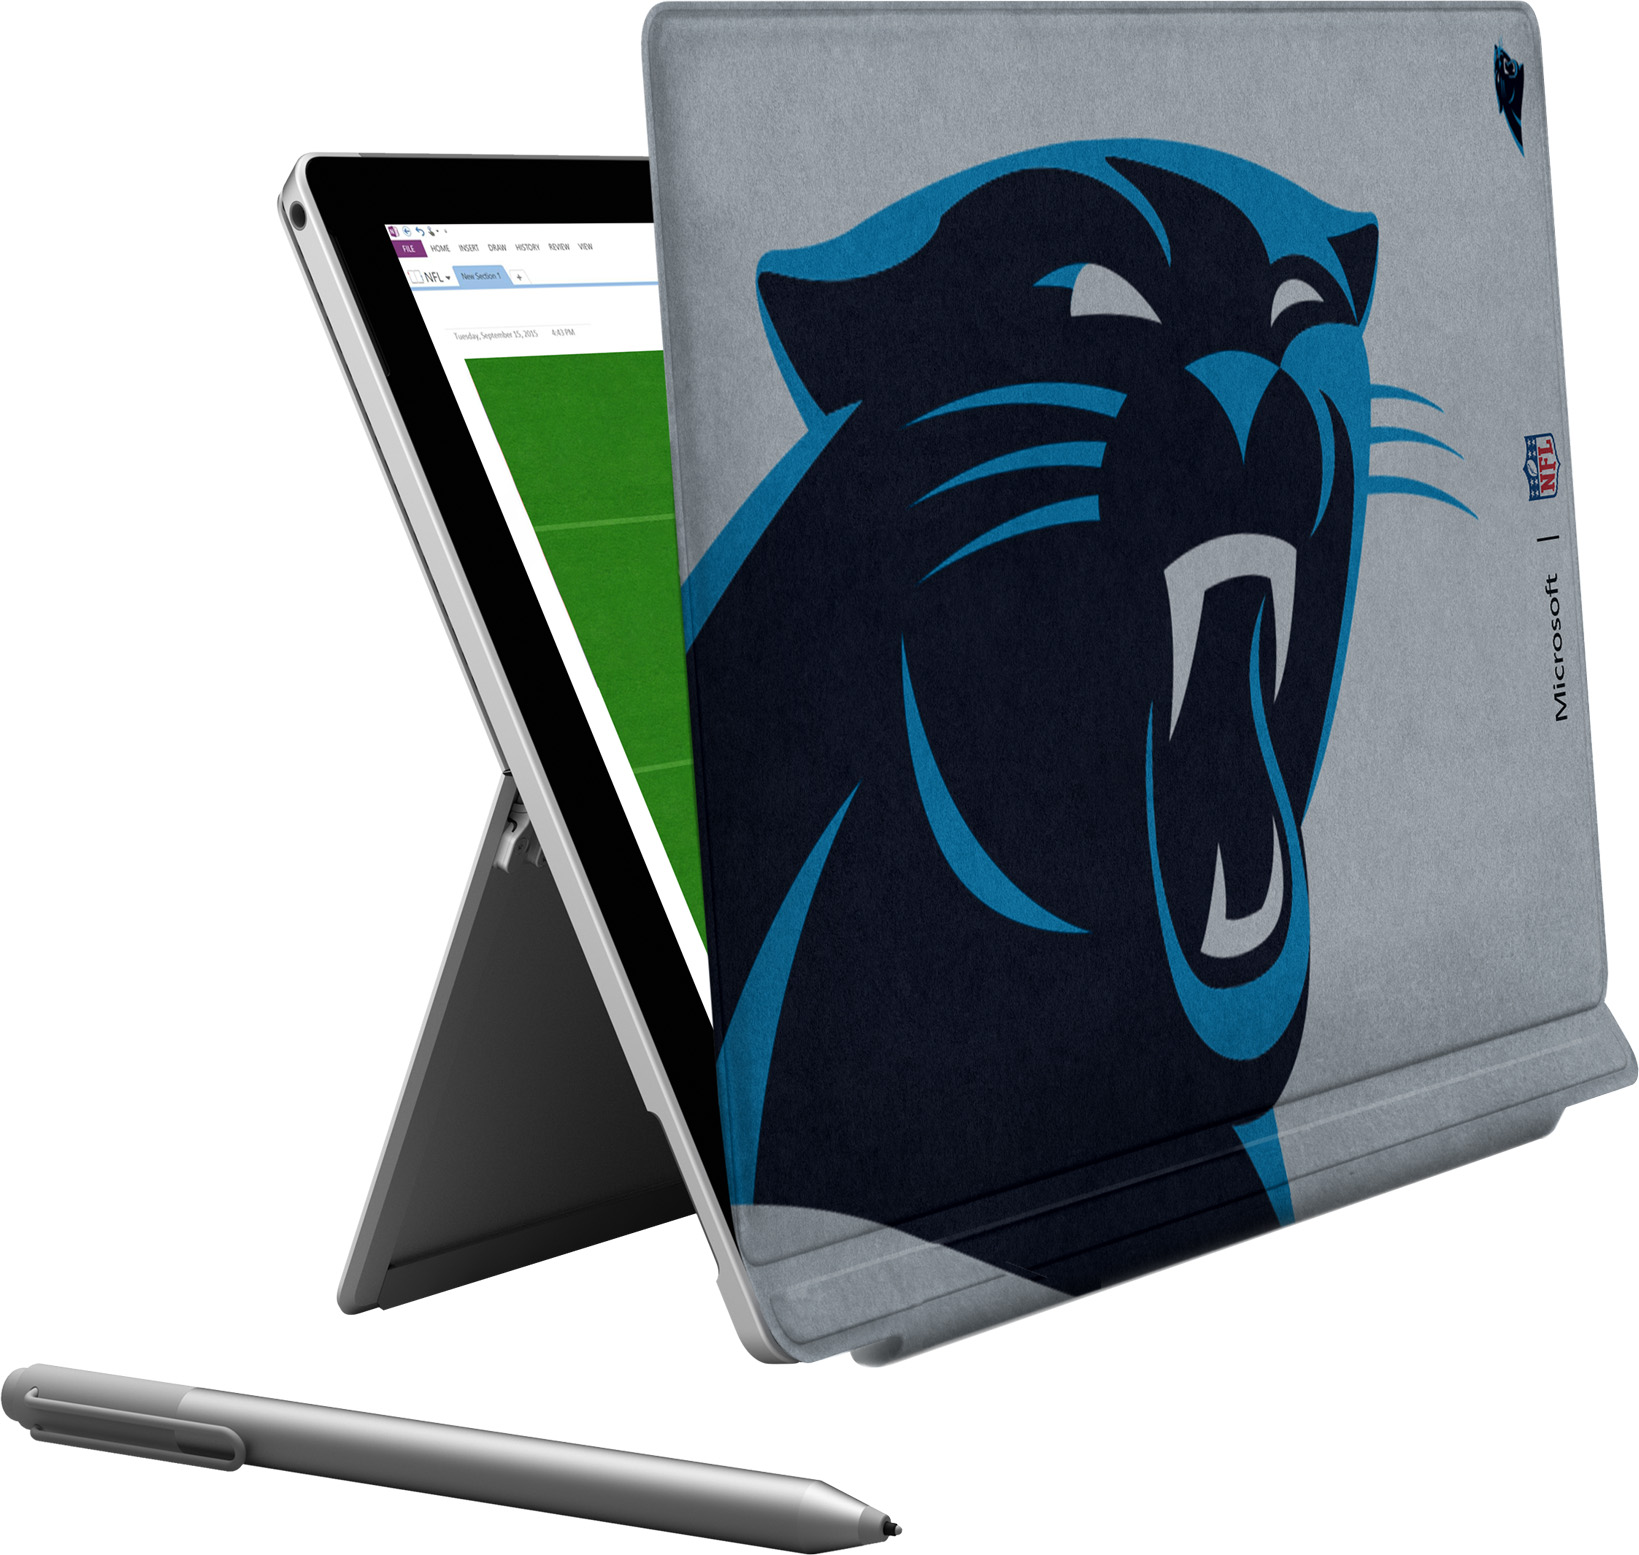 Microsoft Surface Pro 4 Carolina Panthers Type Cover